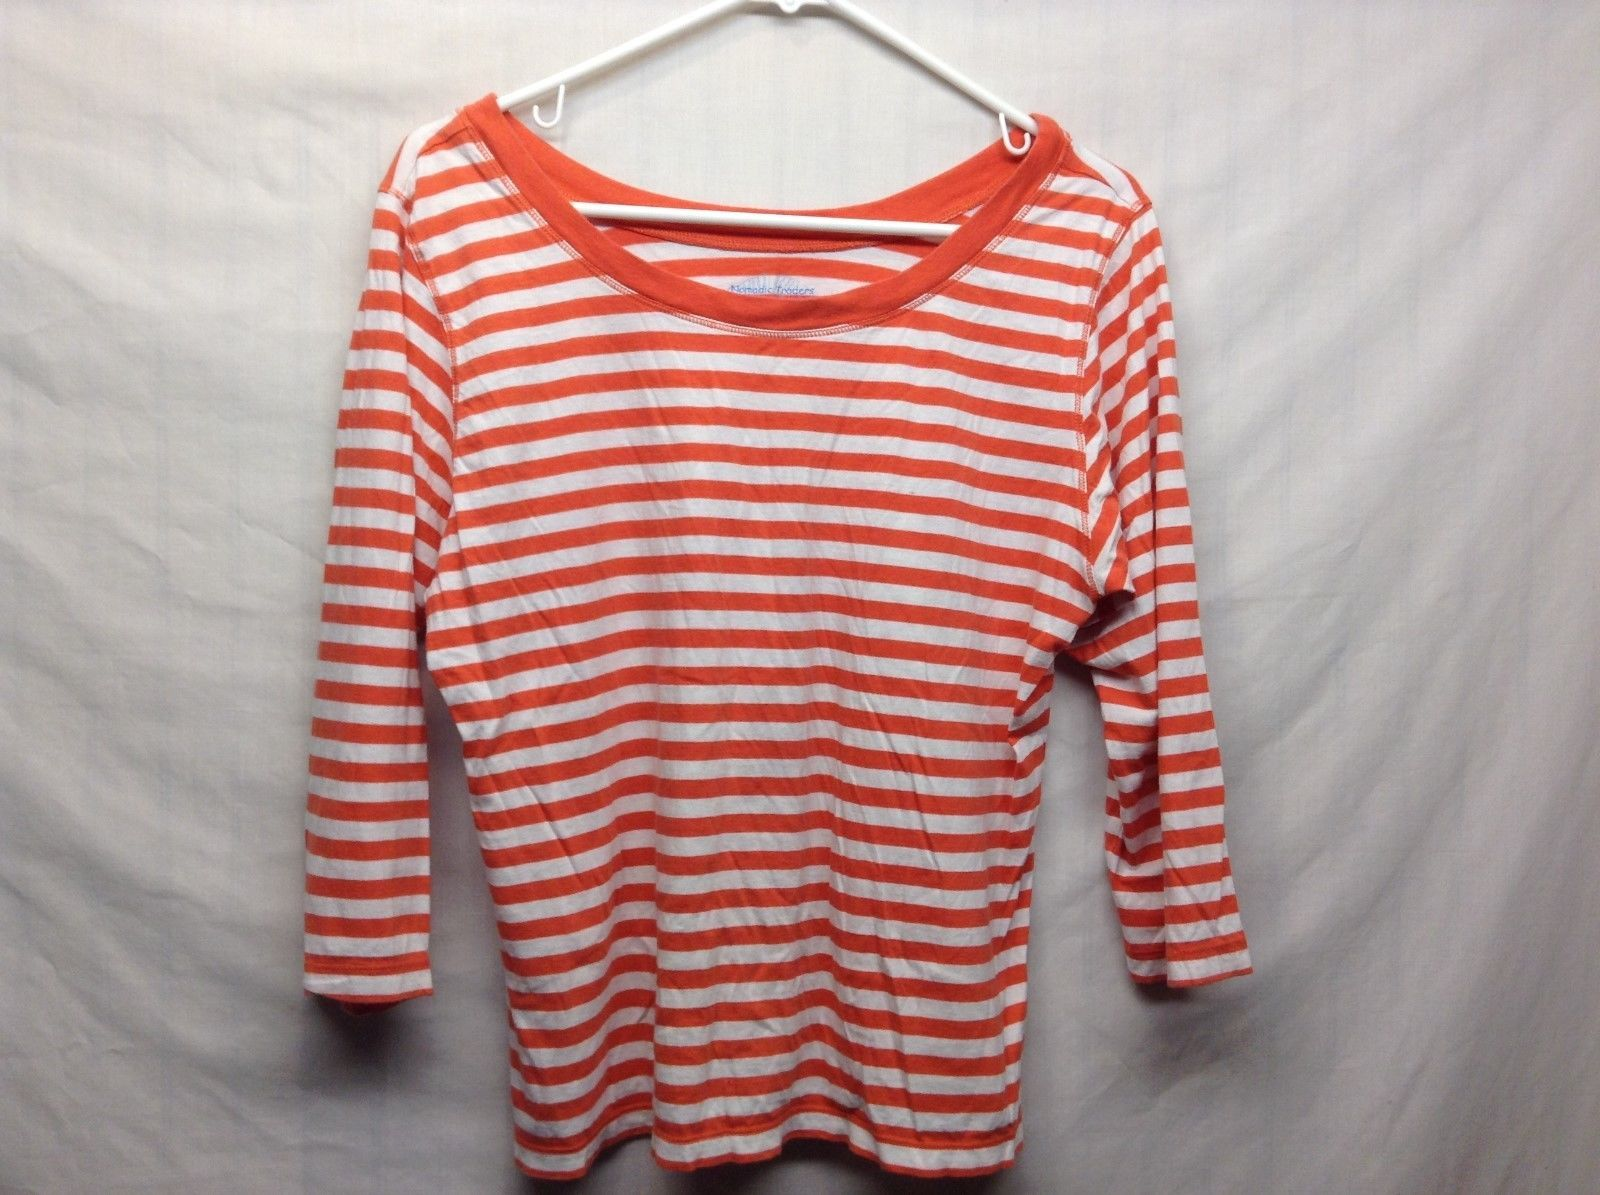 Nomadic Traders Salmon Colored Horizontally Striped Shirt Sz LG